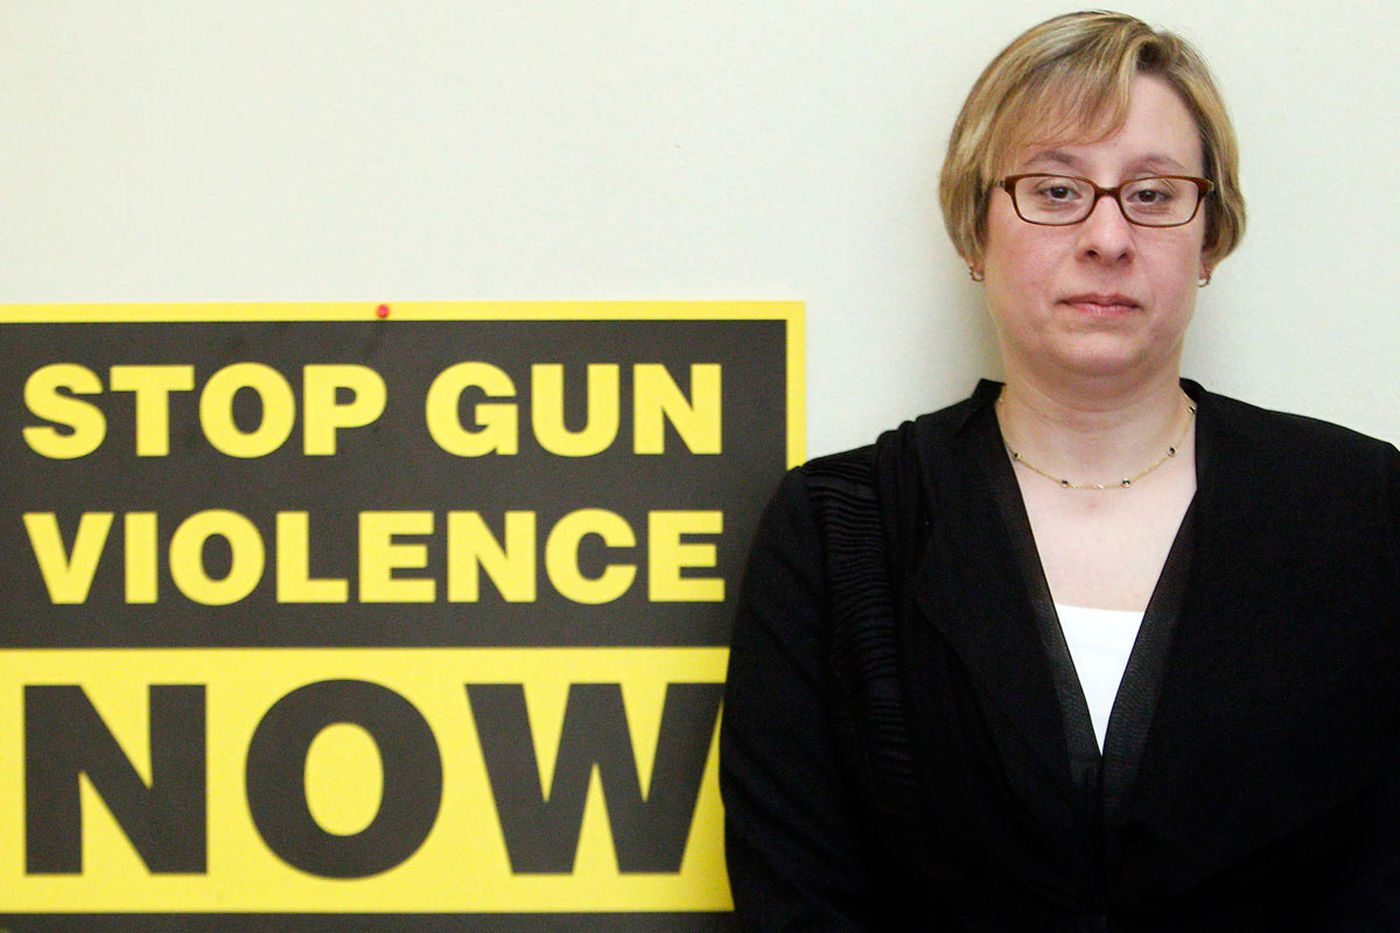 Commentary: Lies about homicides hide the fact we have a gun violence problem